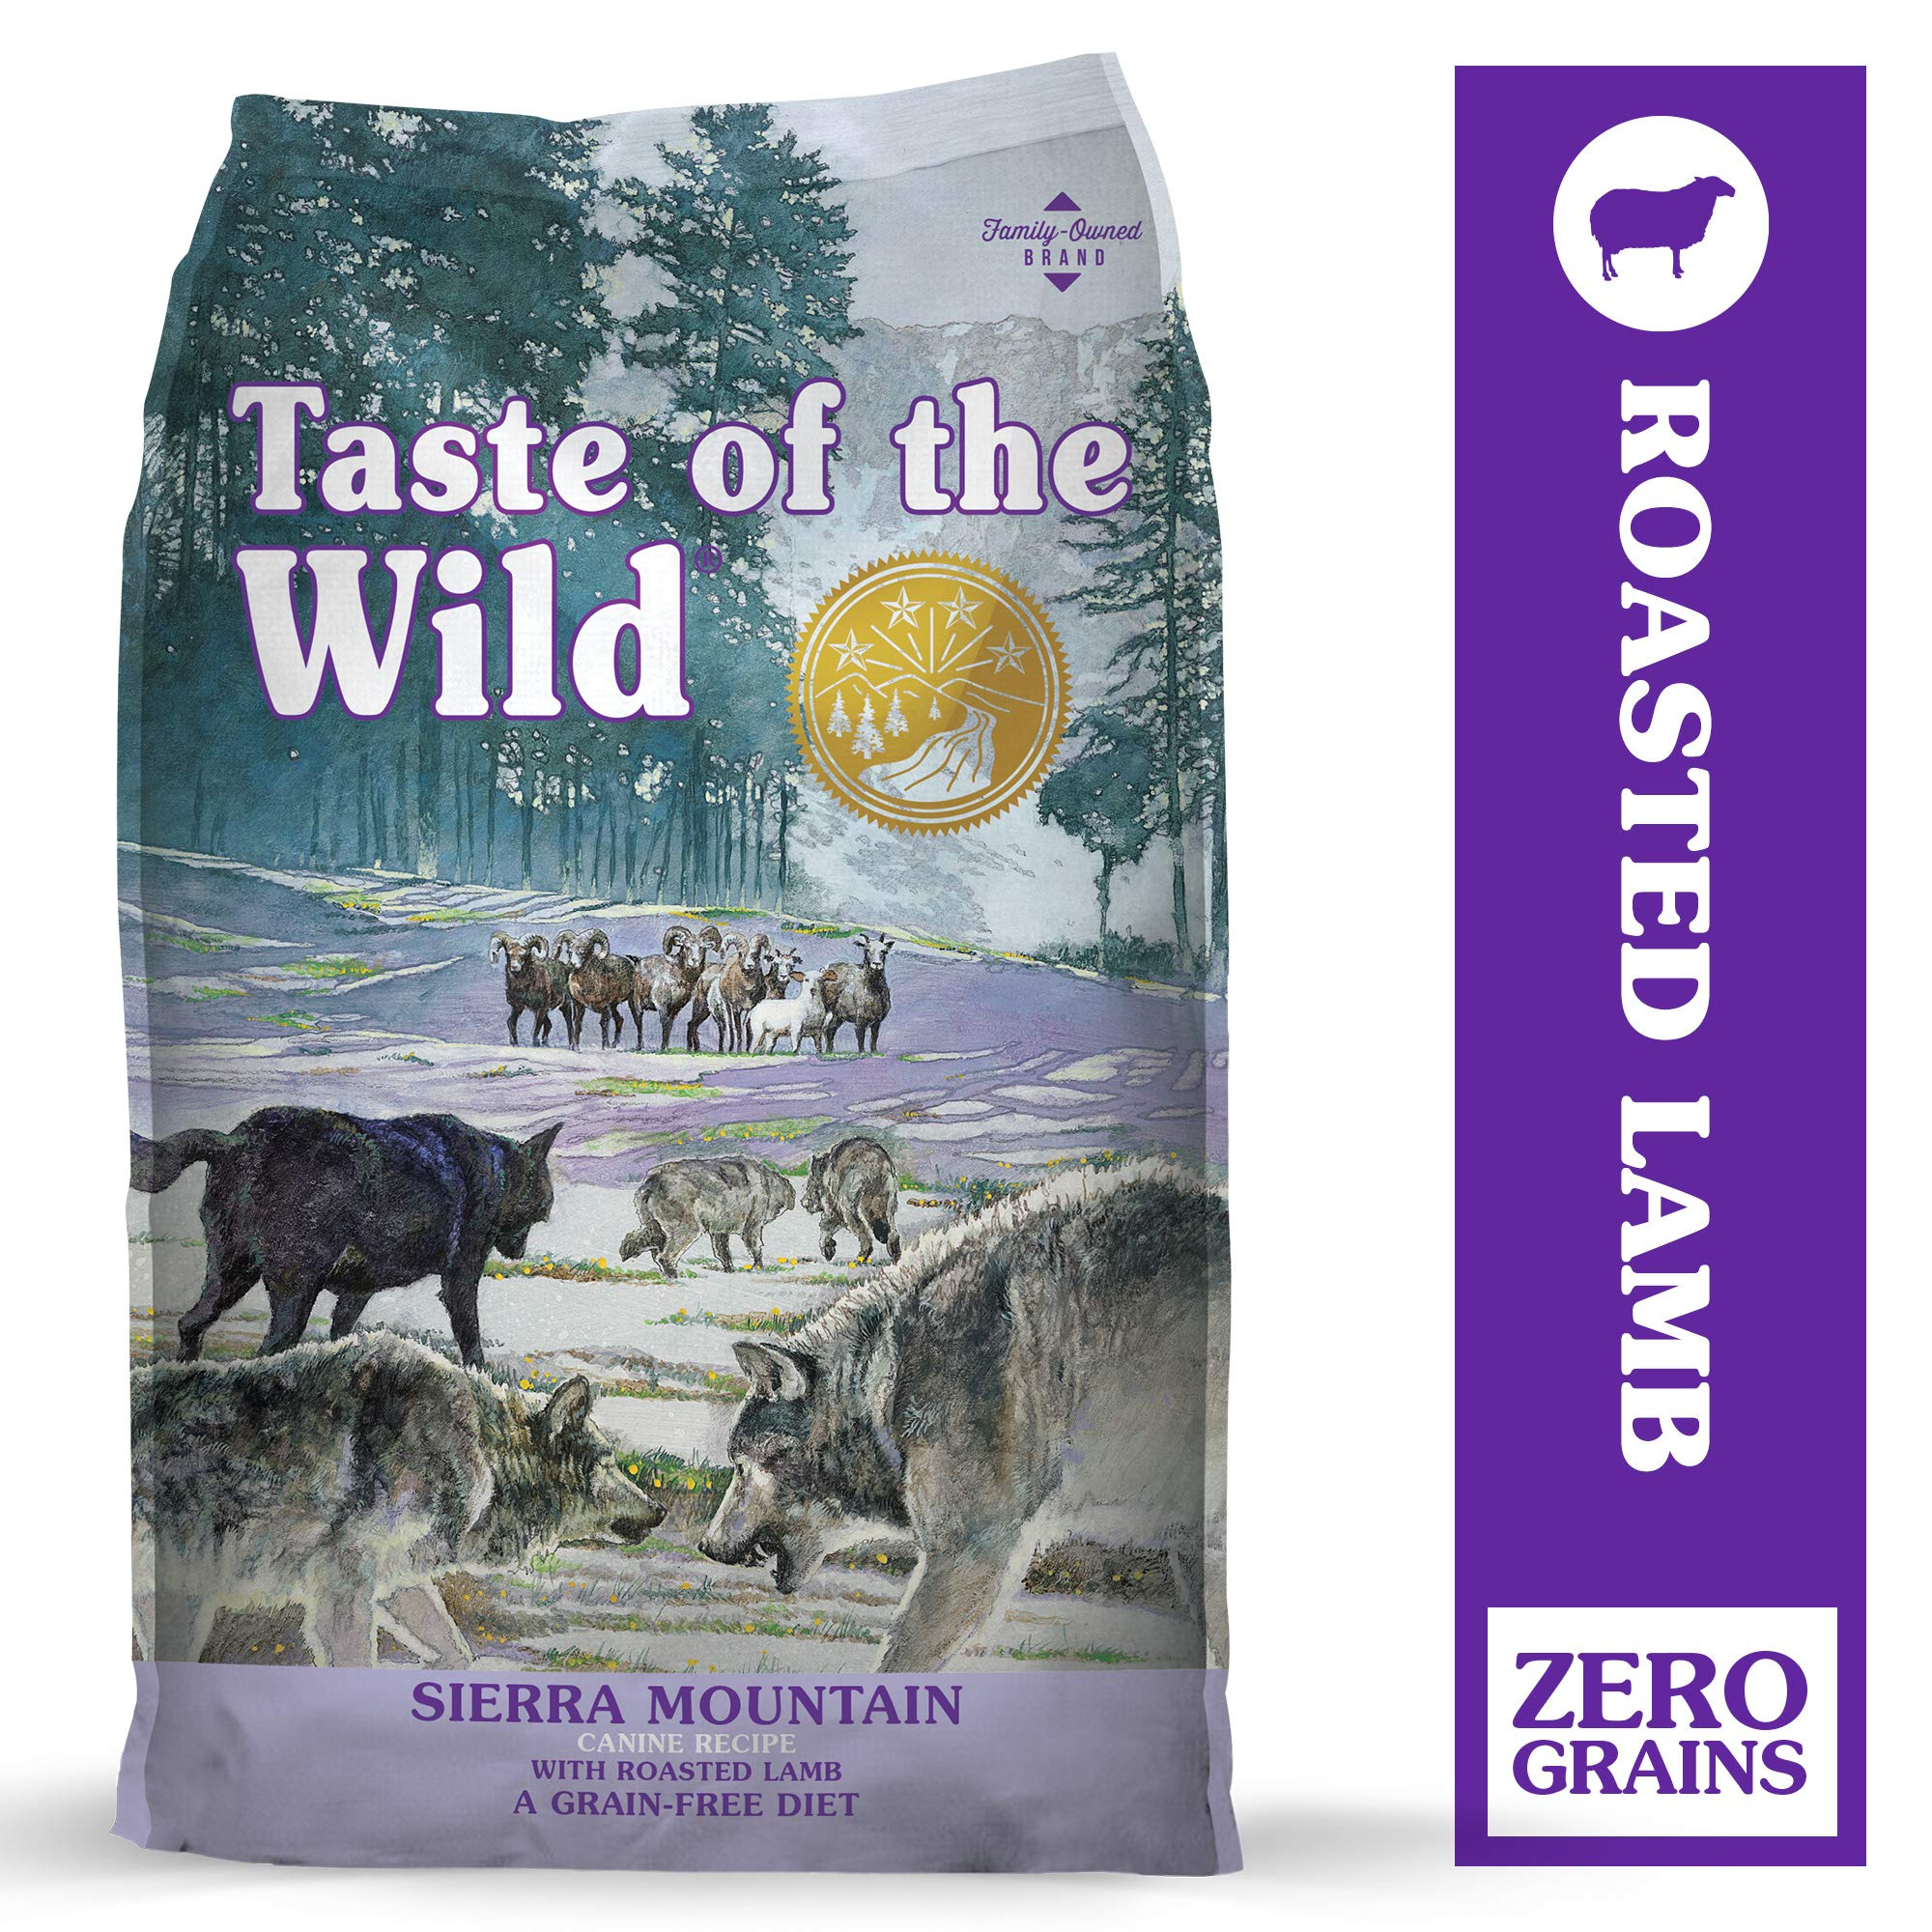 Taste of the Wild Sierra Mountain Grain-Free Dry Dog Food with Roasted Lamb 28lb by Taste of the Wild